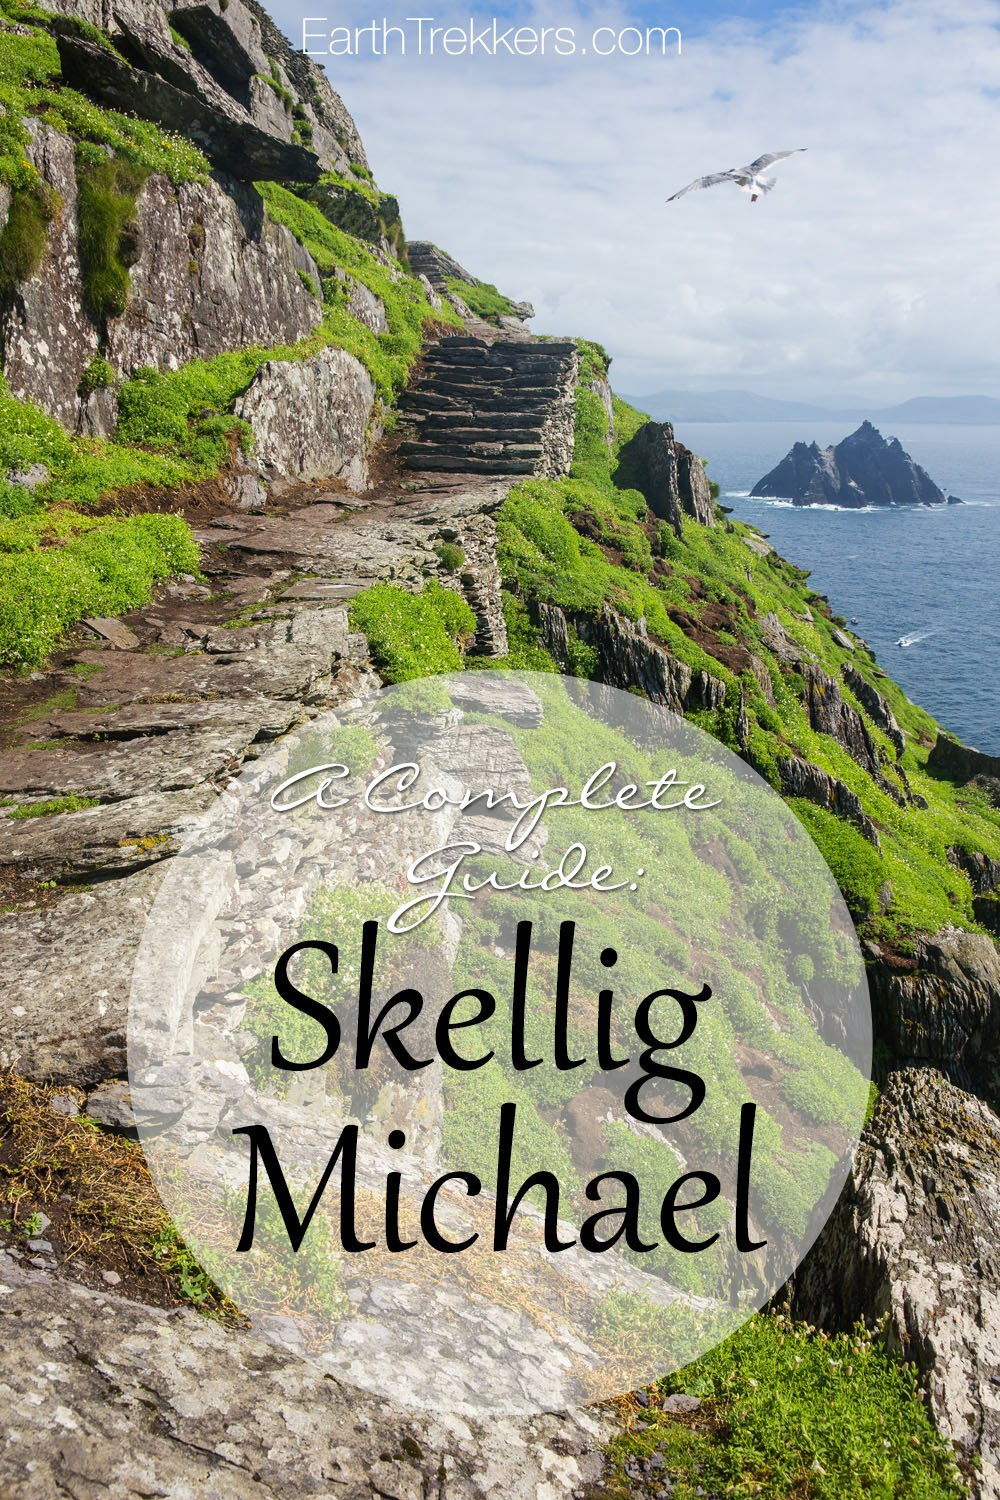 How to Visit Skellig Michael Ireland Star Wars Filming Location